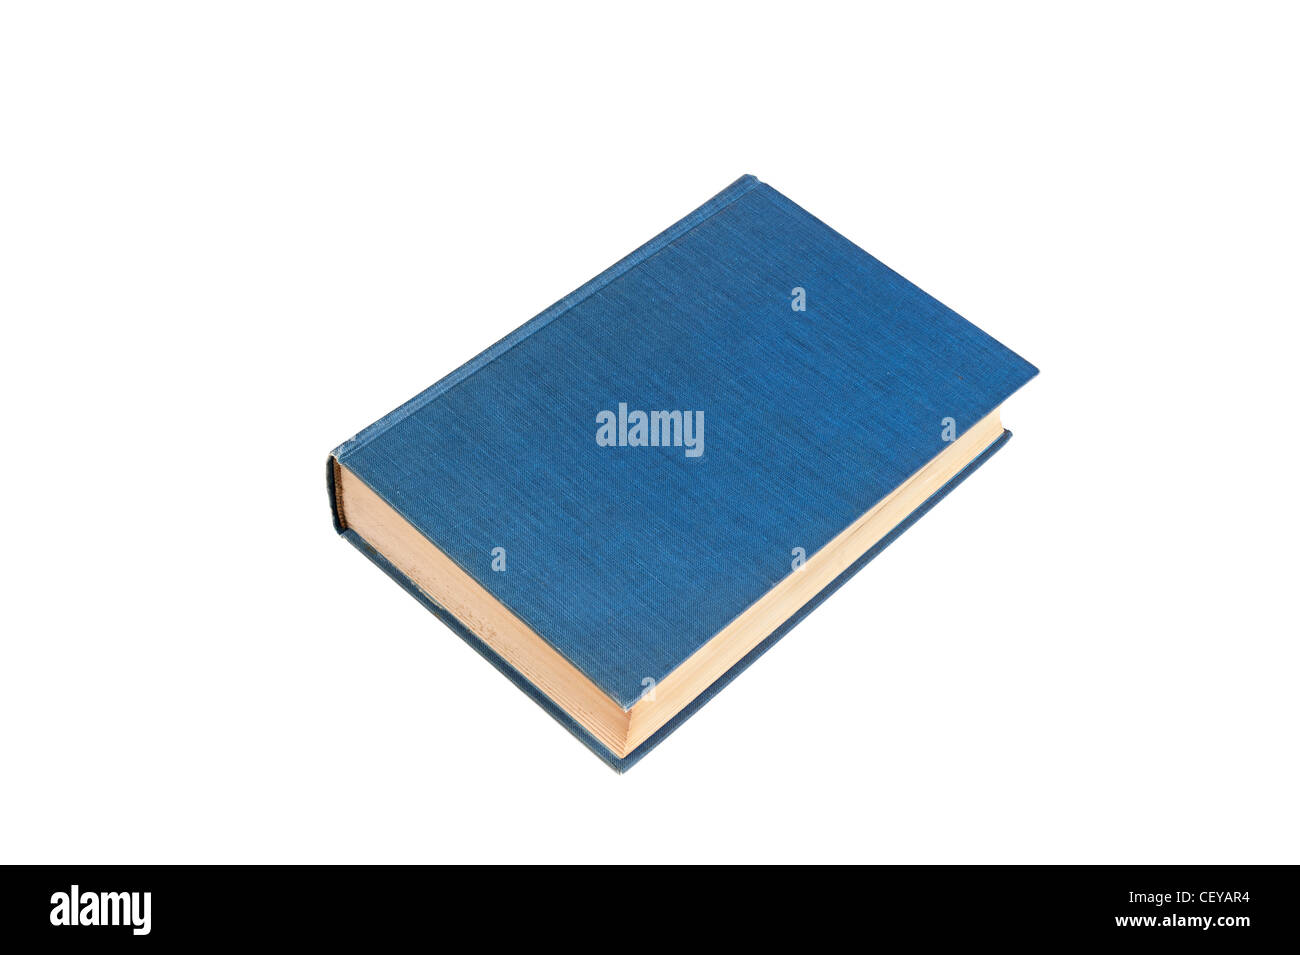 An old, aged blue hardcover book isolated on white. Designers can place copy on the blank cover. - Stock Image